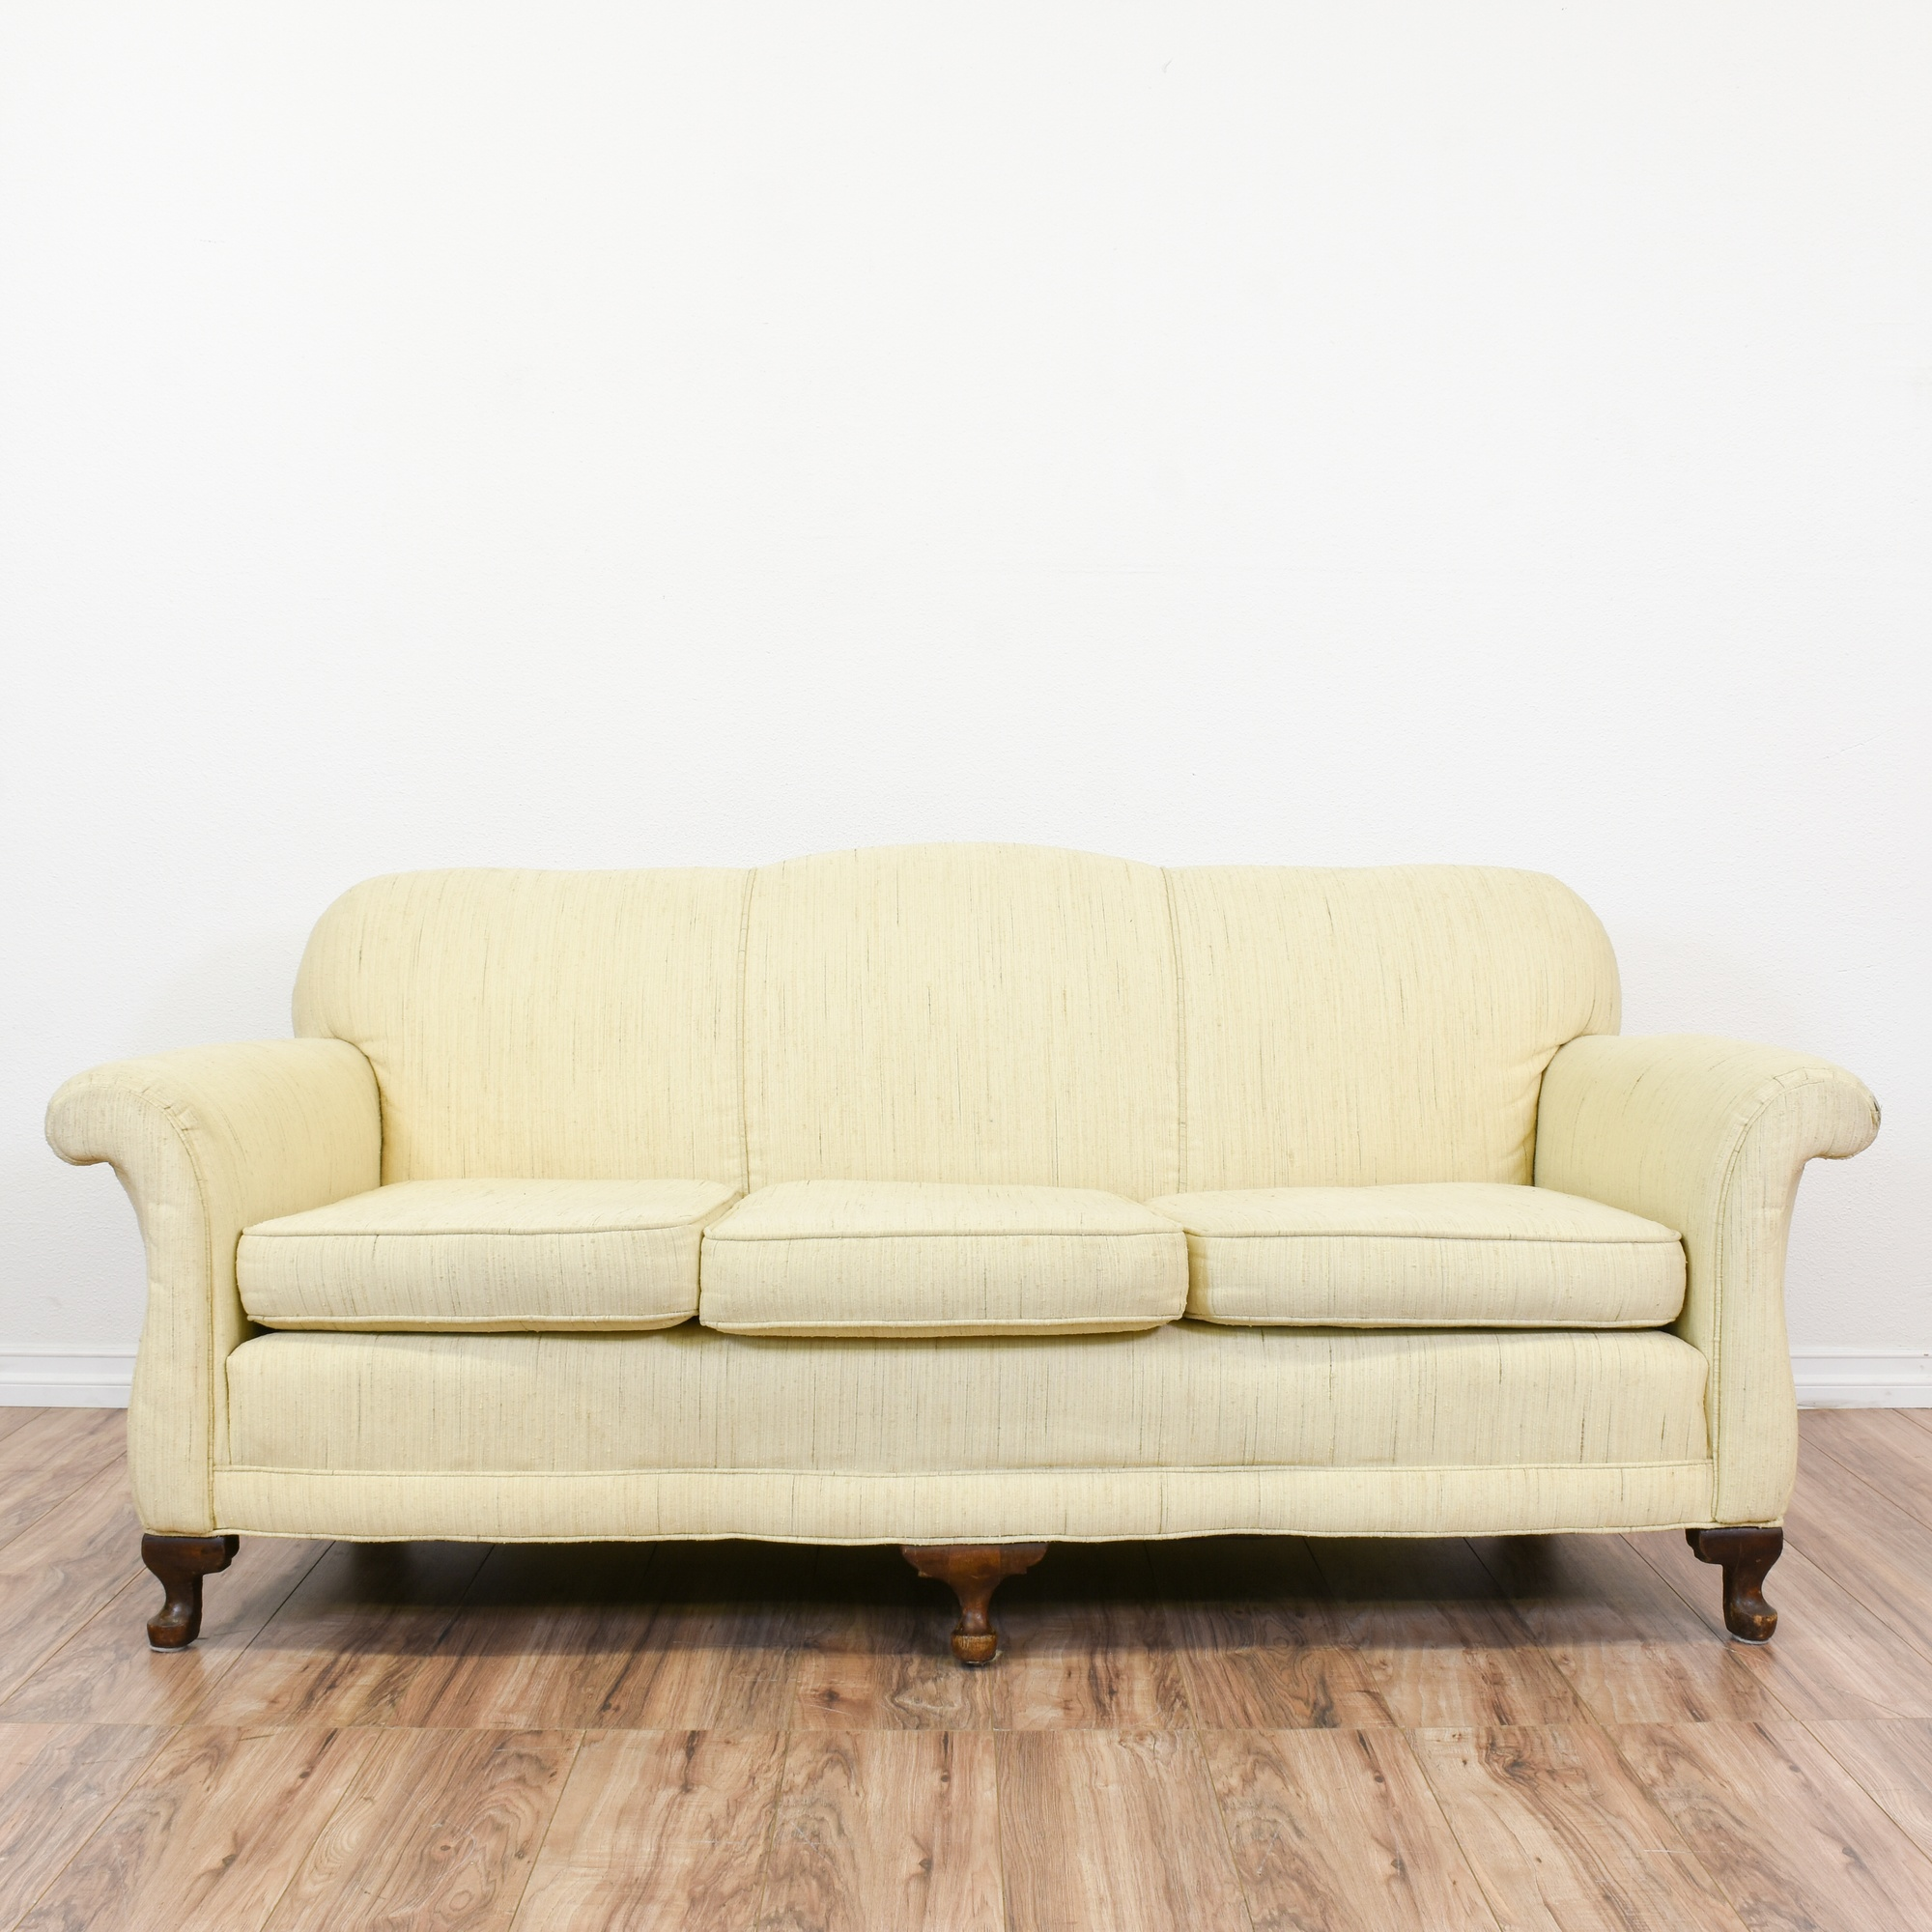 Traditional White Upholstered Sofa